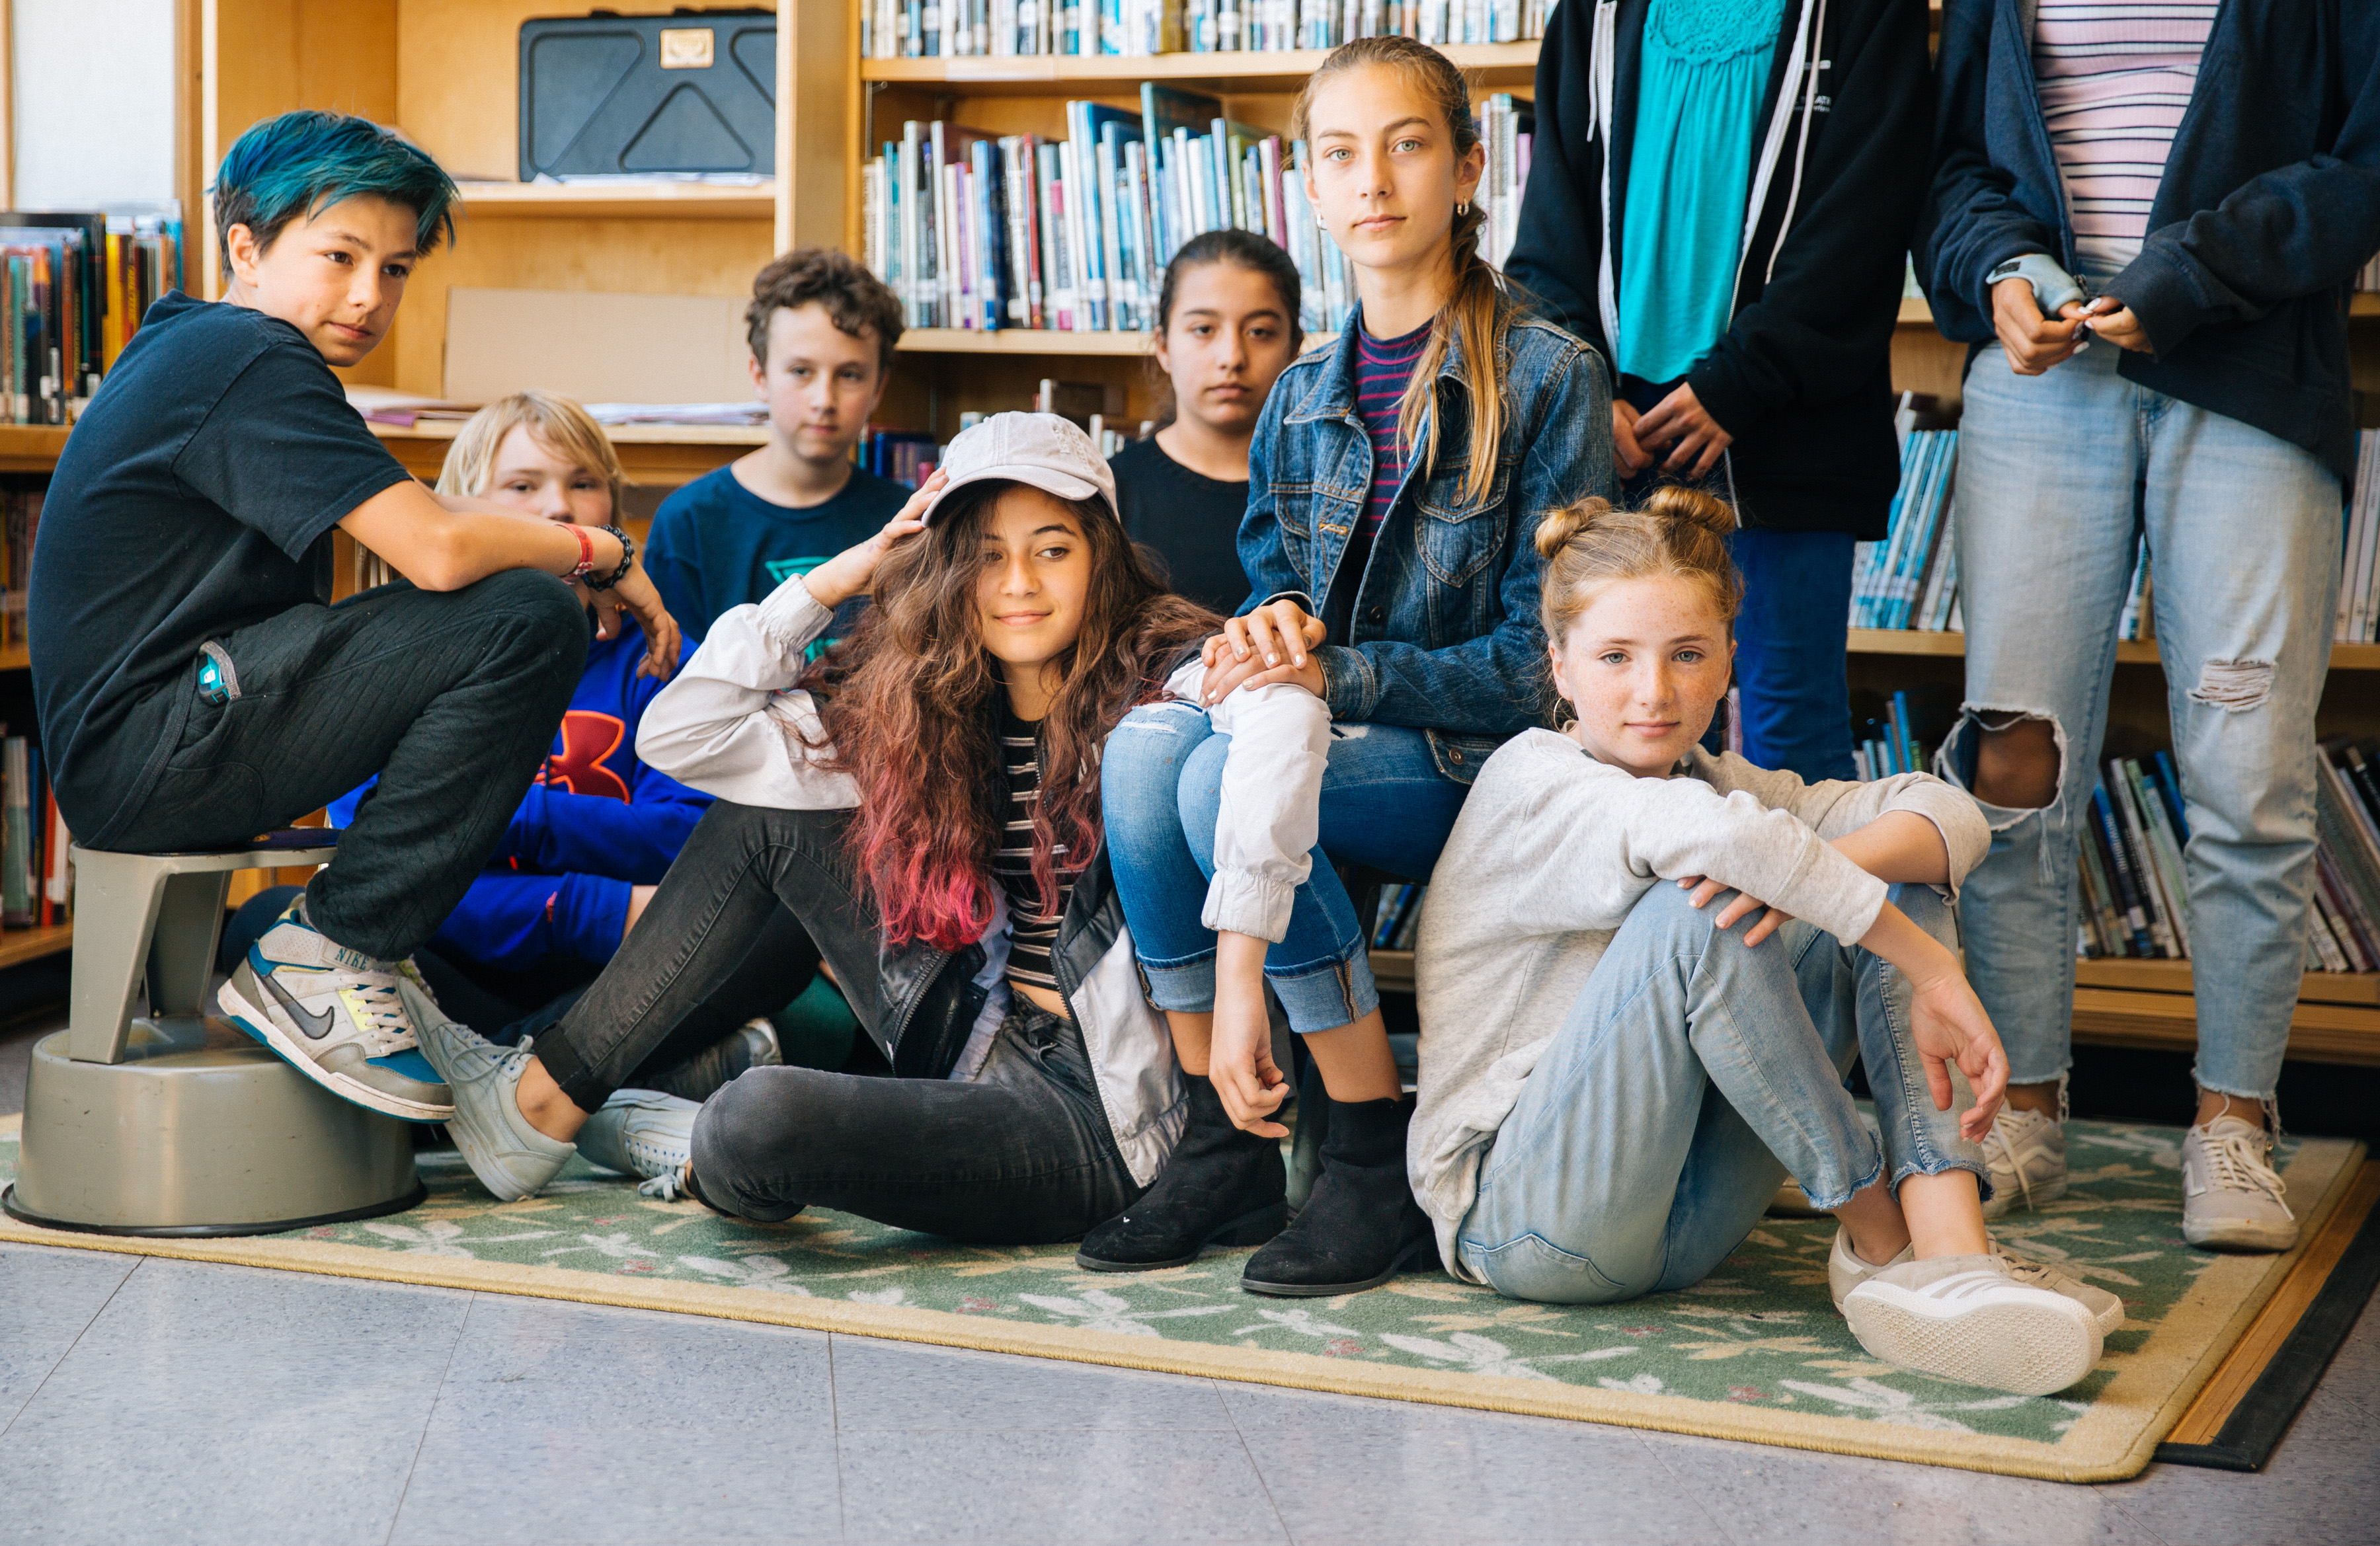 a group of children in a library